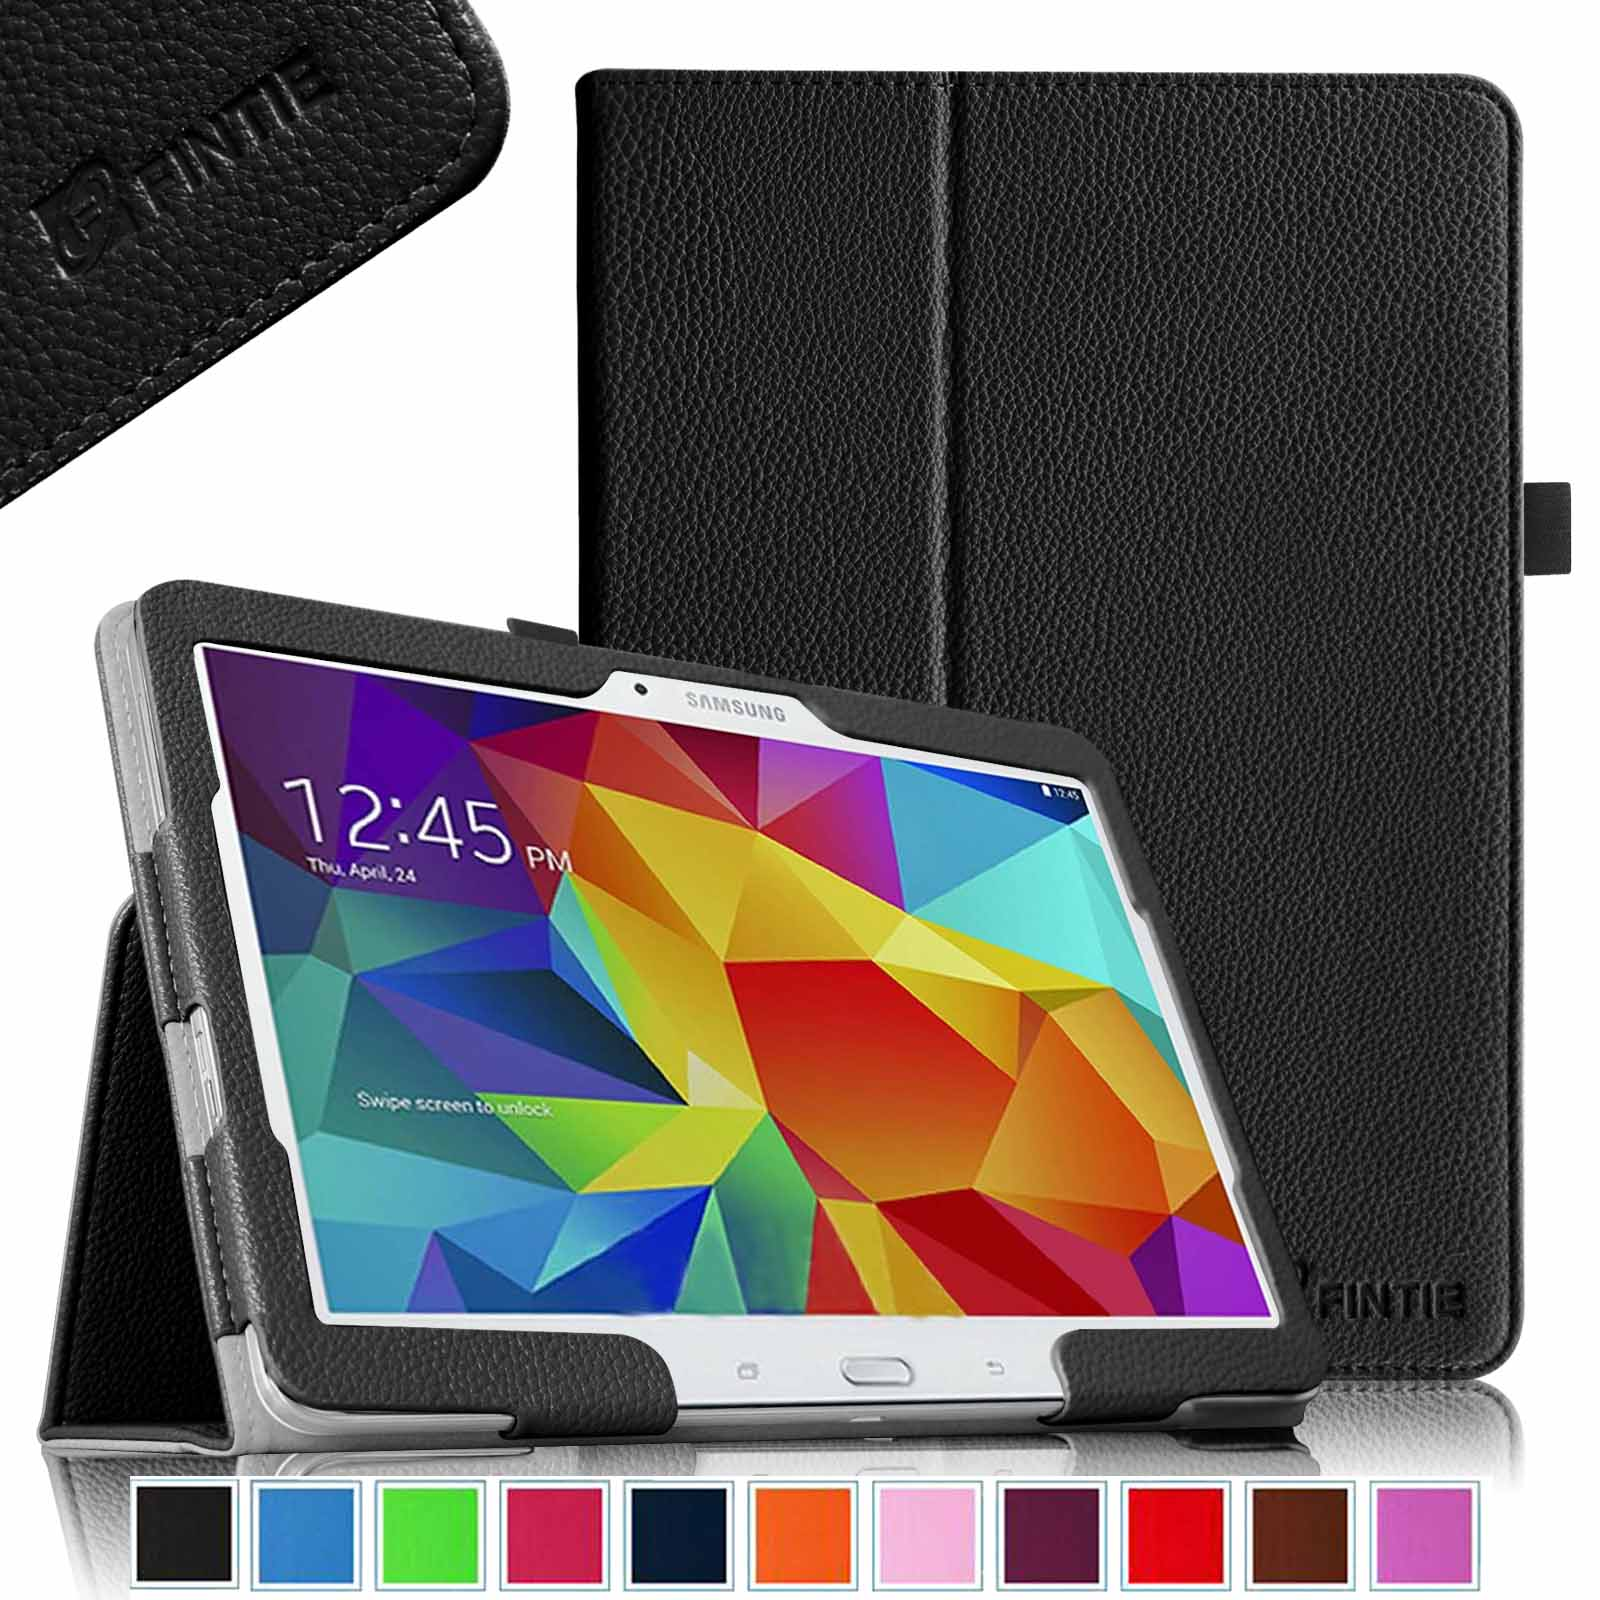 Fintie Samsung Galaxy Tab 4 10.1 / Tab 4 Nook 10.1 Folio Case - Slim Fit PU Leather Cover with Auto Sleep/Wake, Black